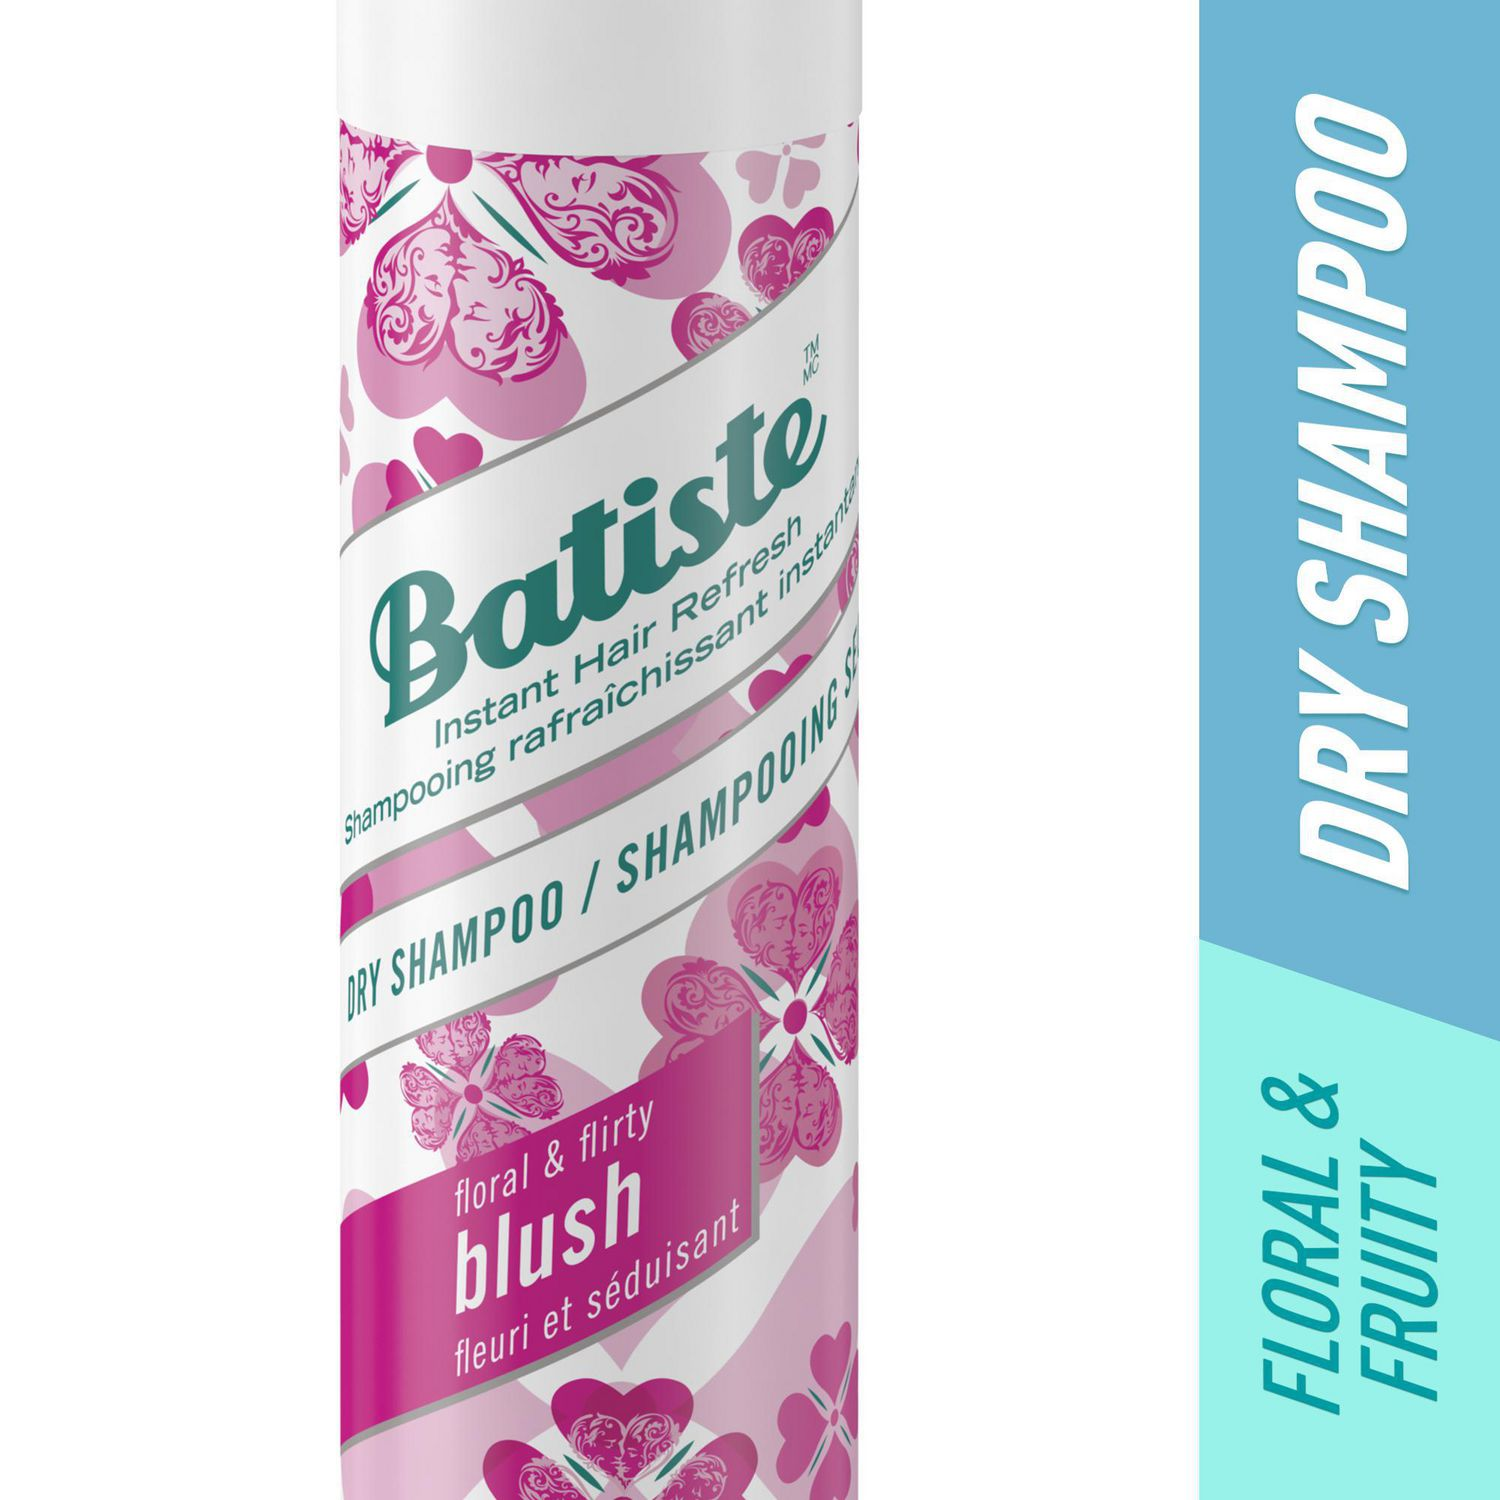 Pink and white spray can of Batiste Blush dry shampoo - best dry shampoo overall